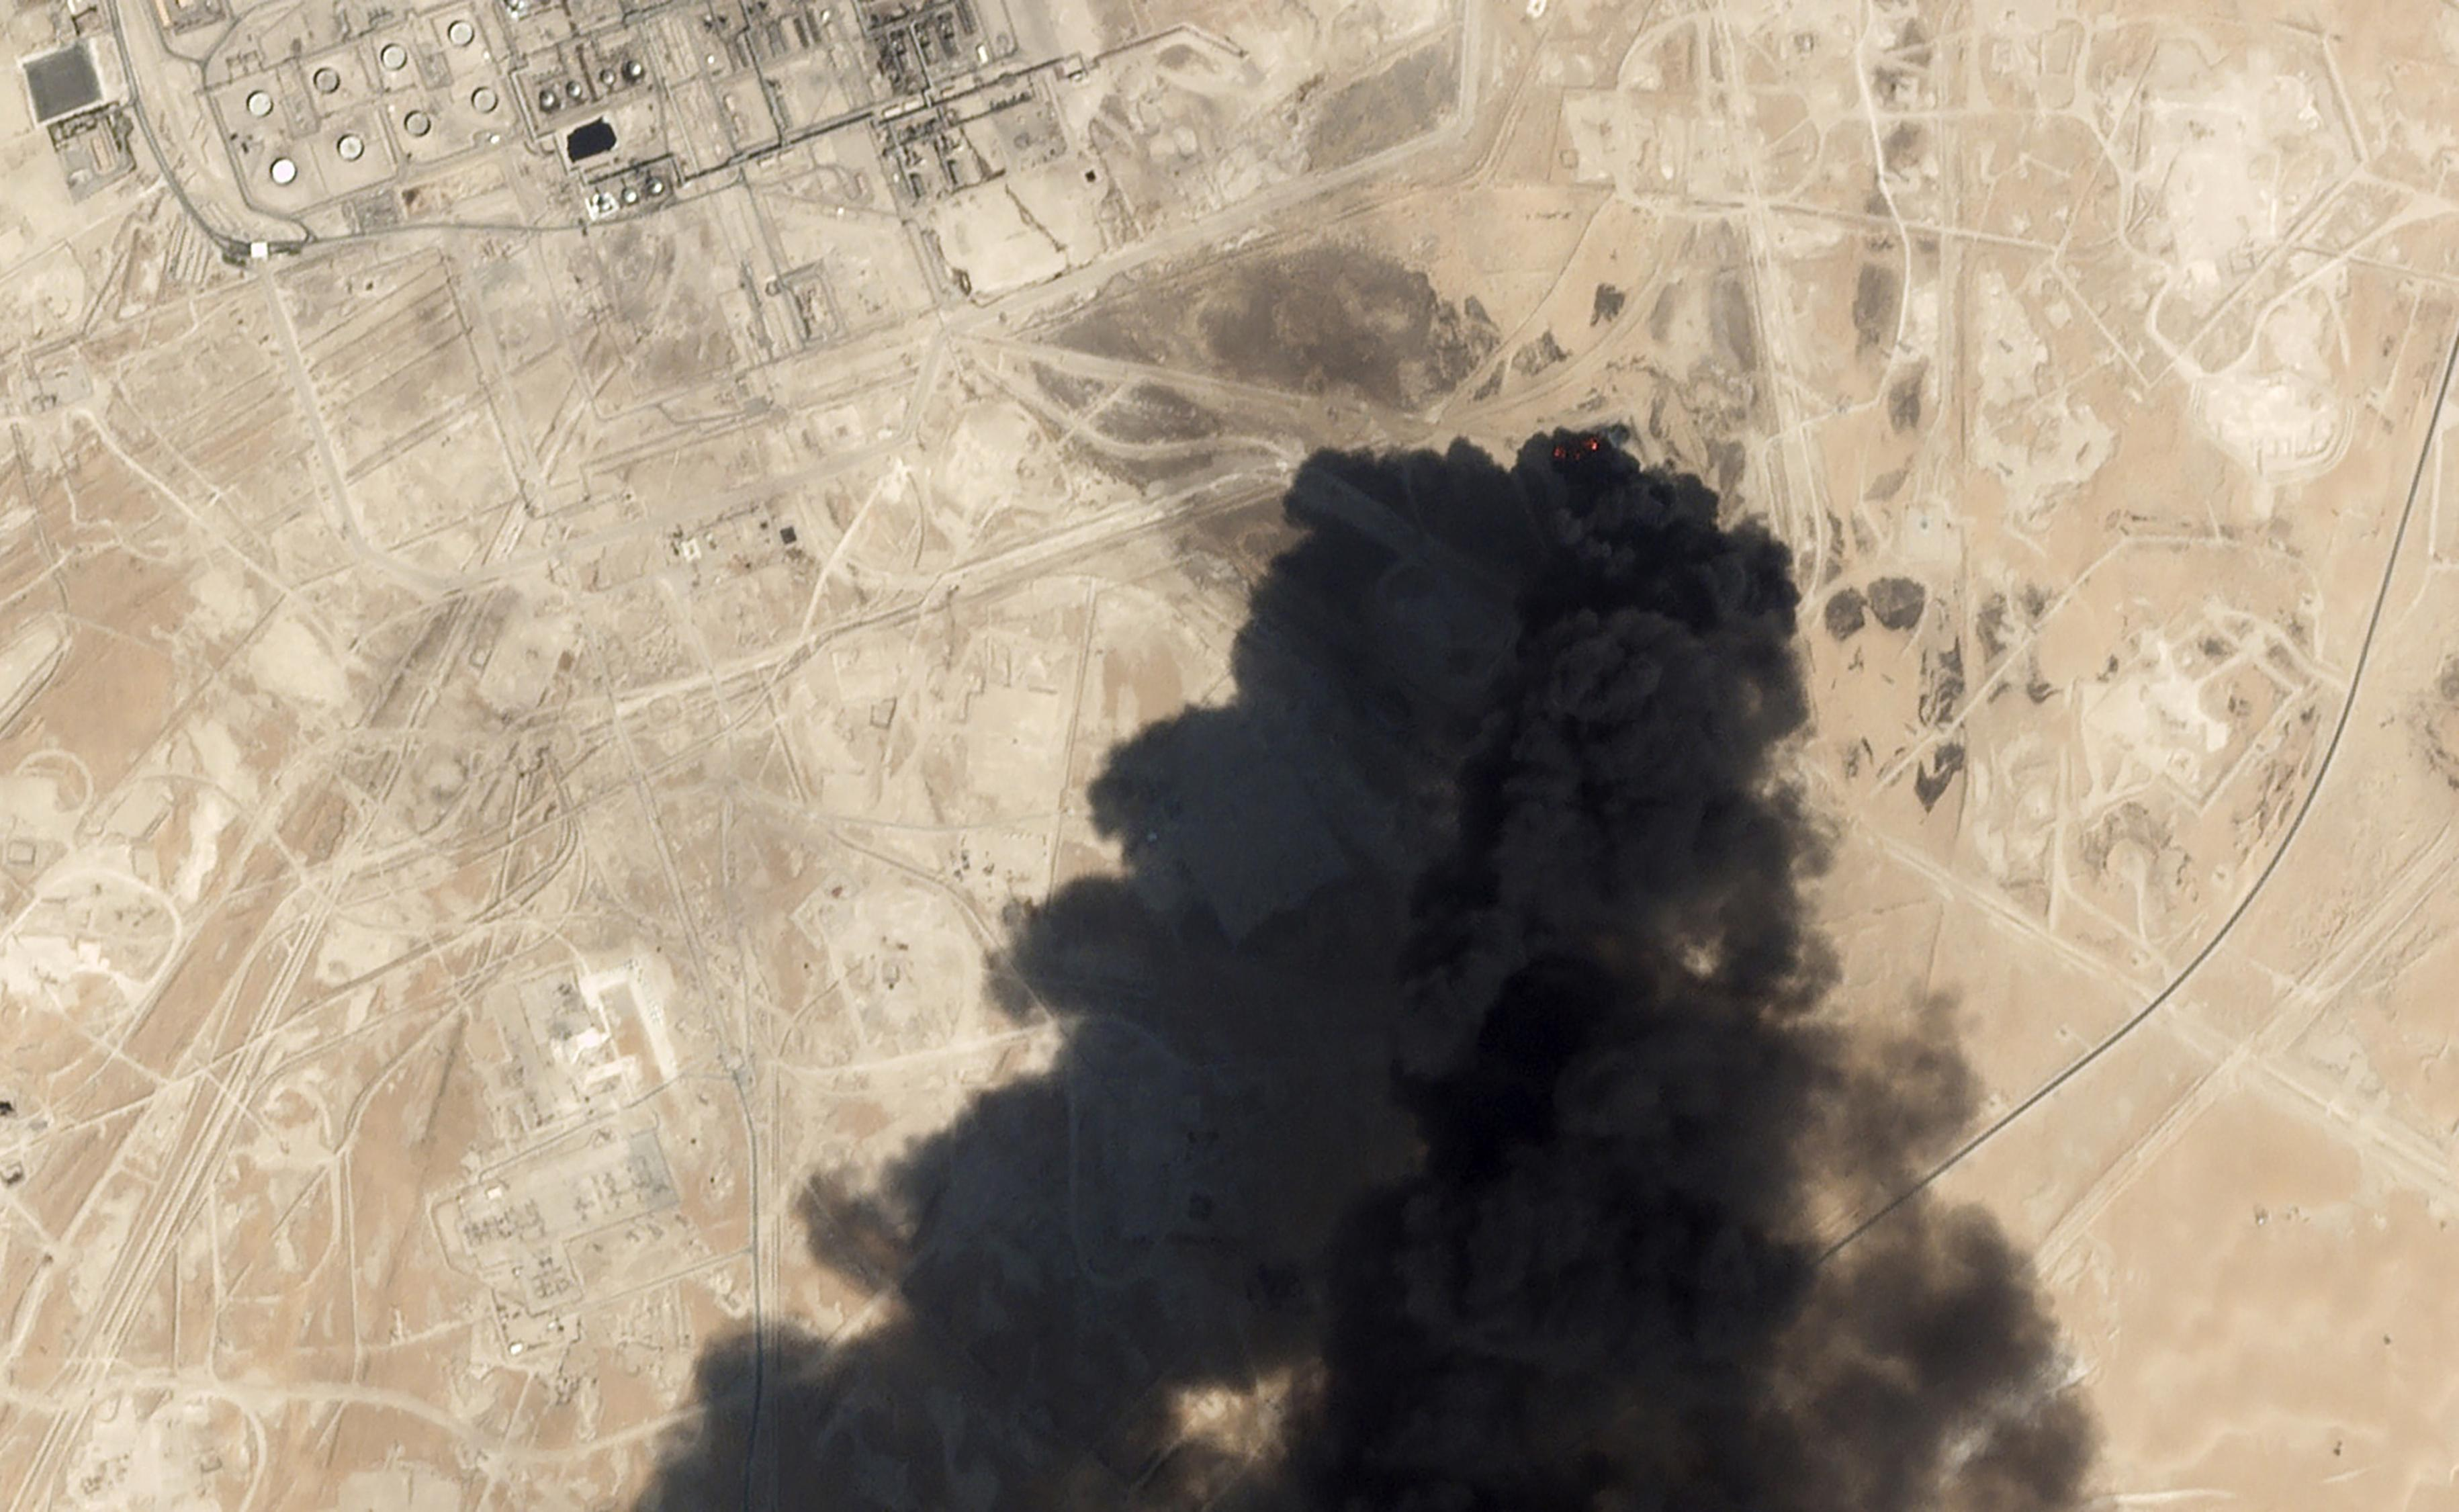 Everything you need to know about the Saudi Arabia oil attacks